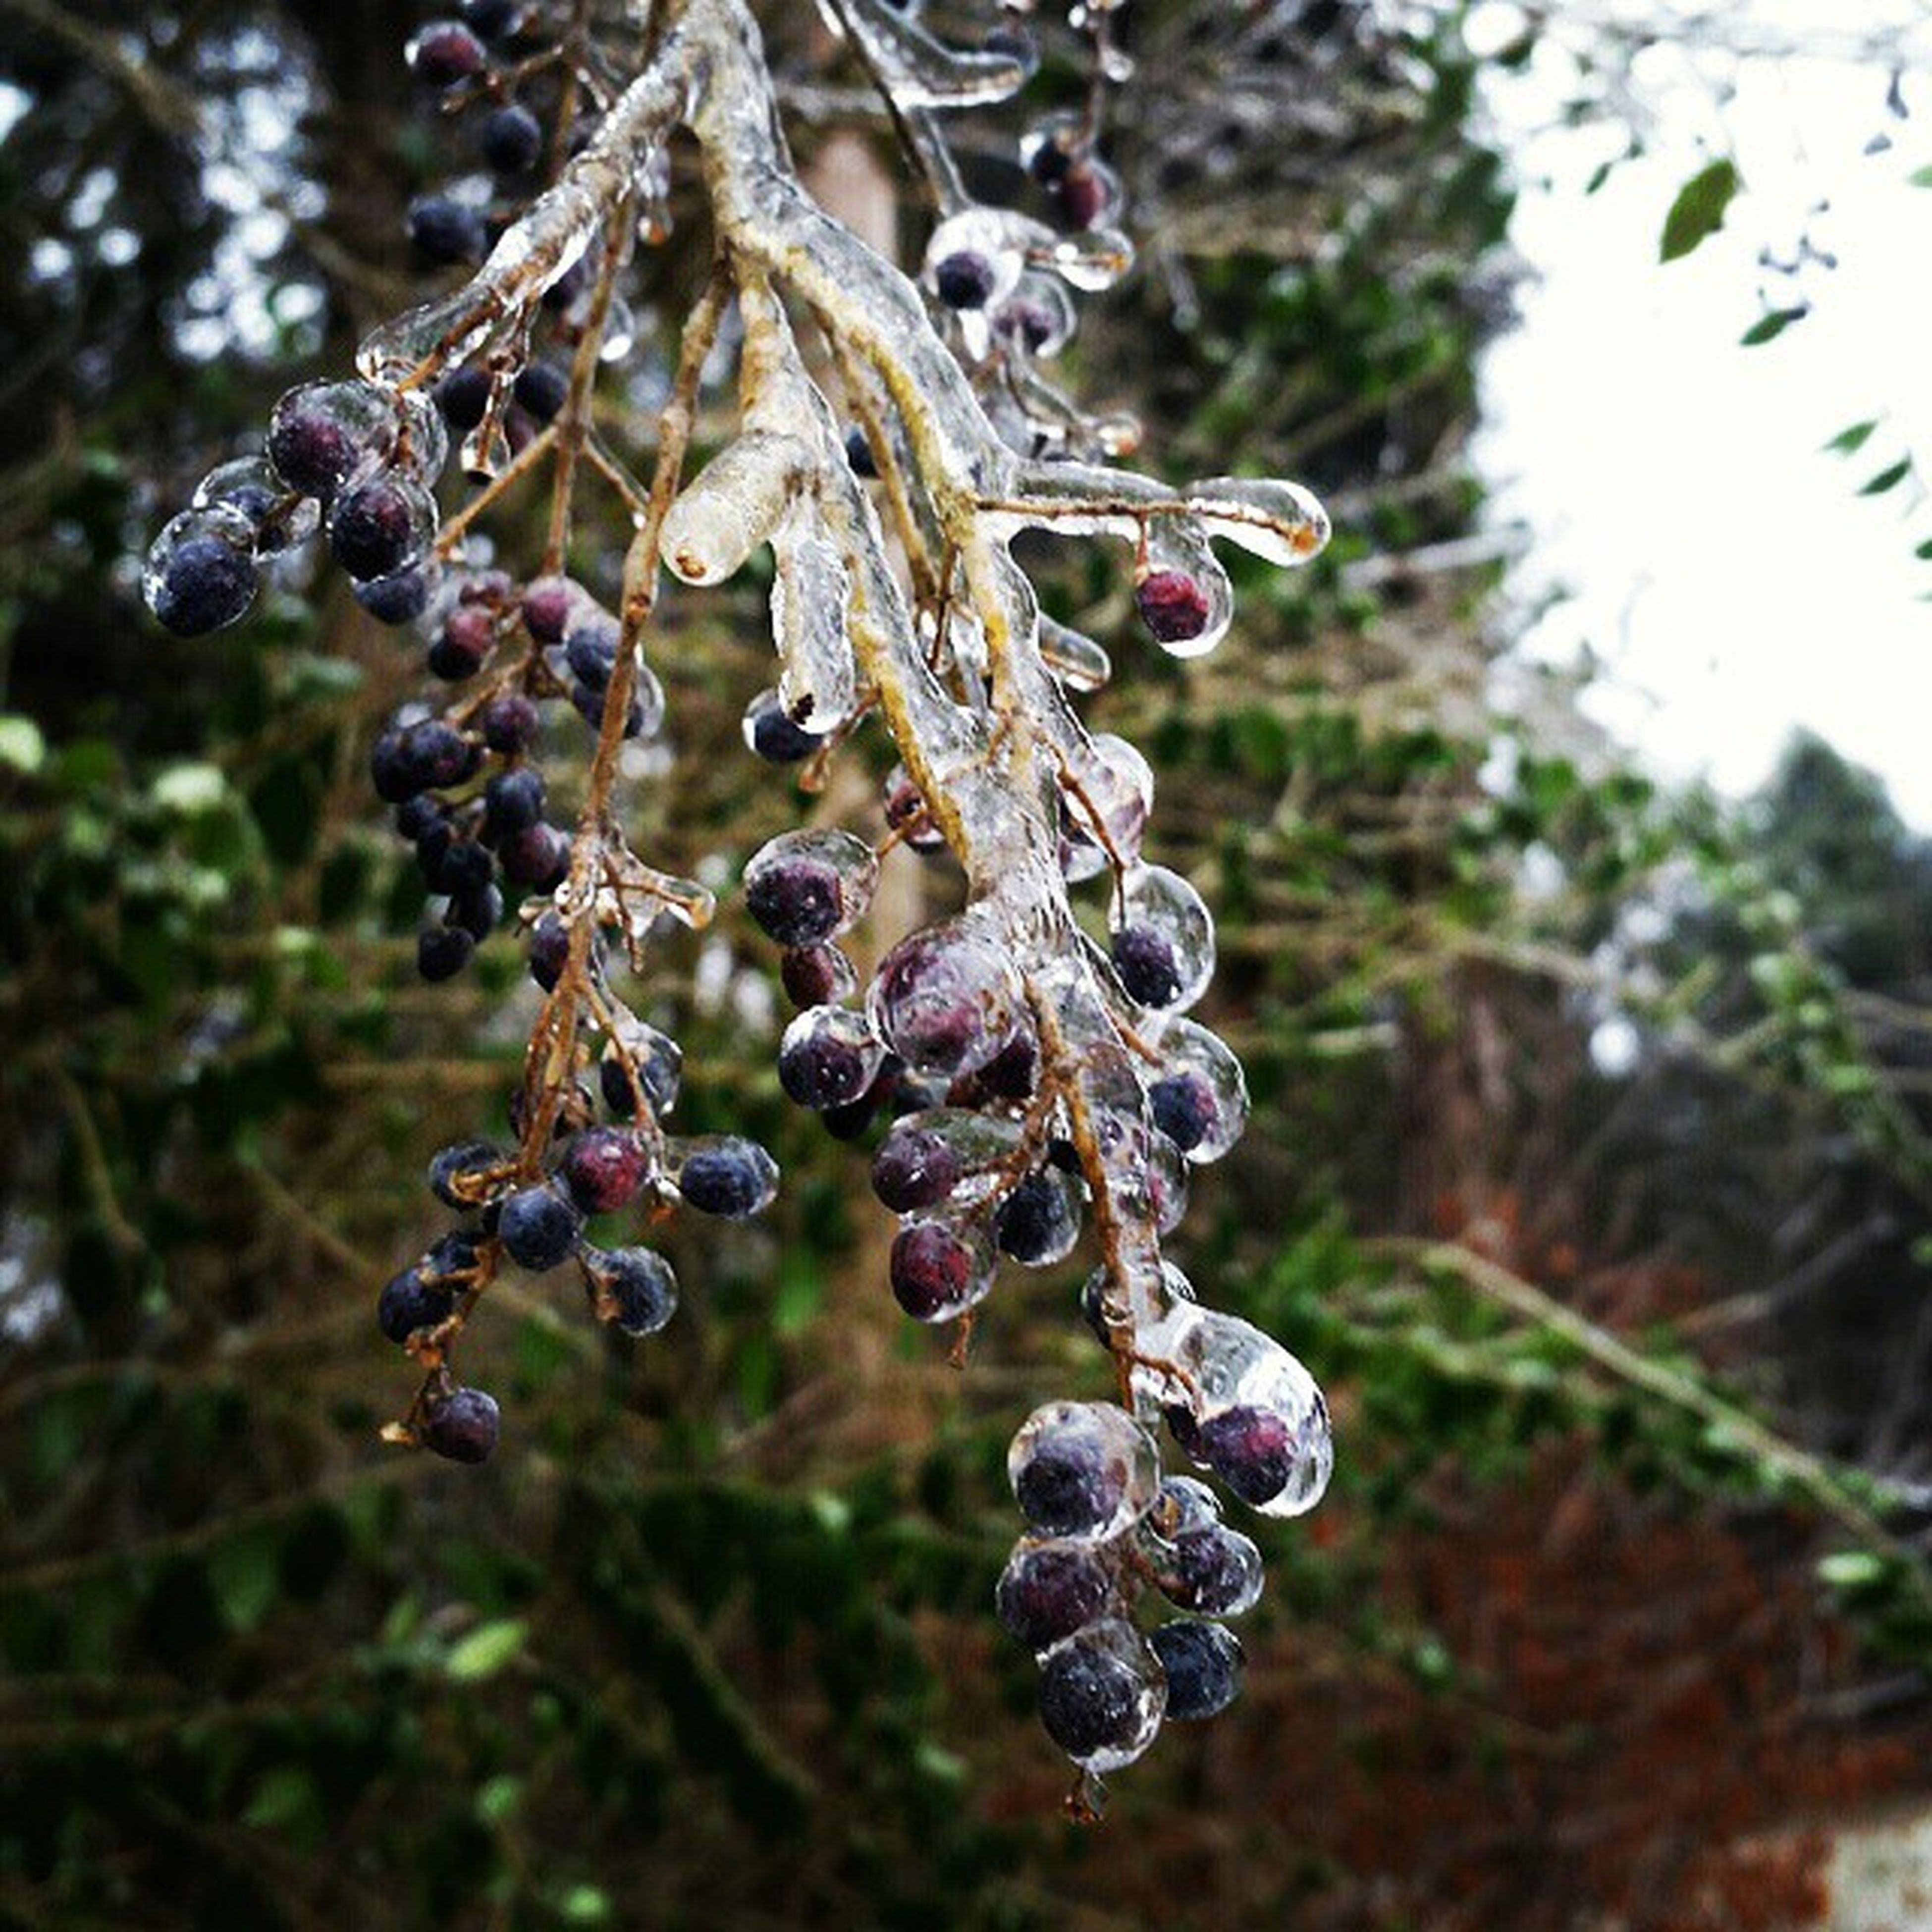 close-up, focus on foreground, growth, nature, cold temperature, winter, frozen, drop, plant, hanging, branch, tree, water, beauty in nature, selective focus, fragility, day, wet, season, outdoors